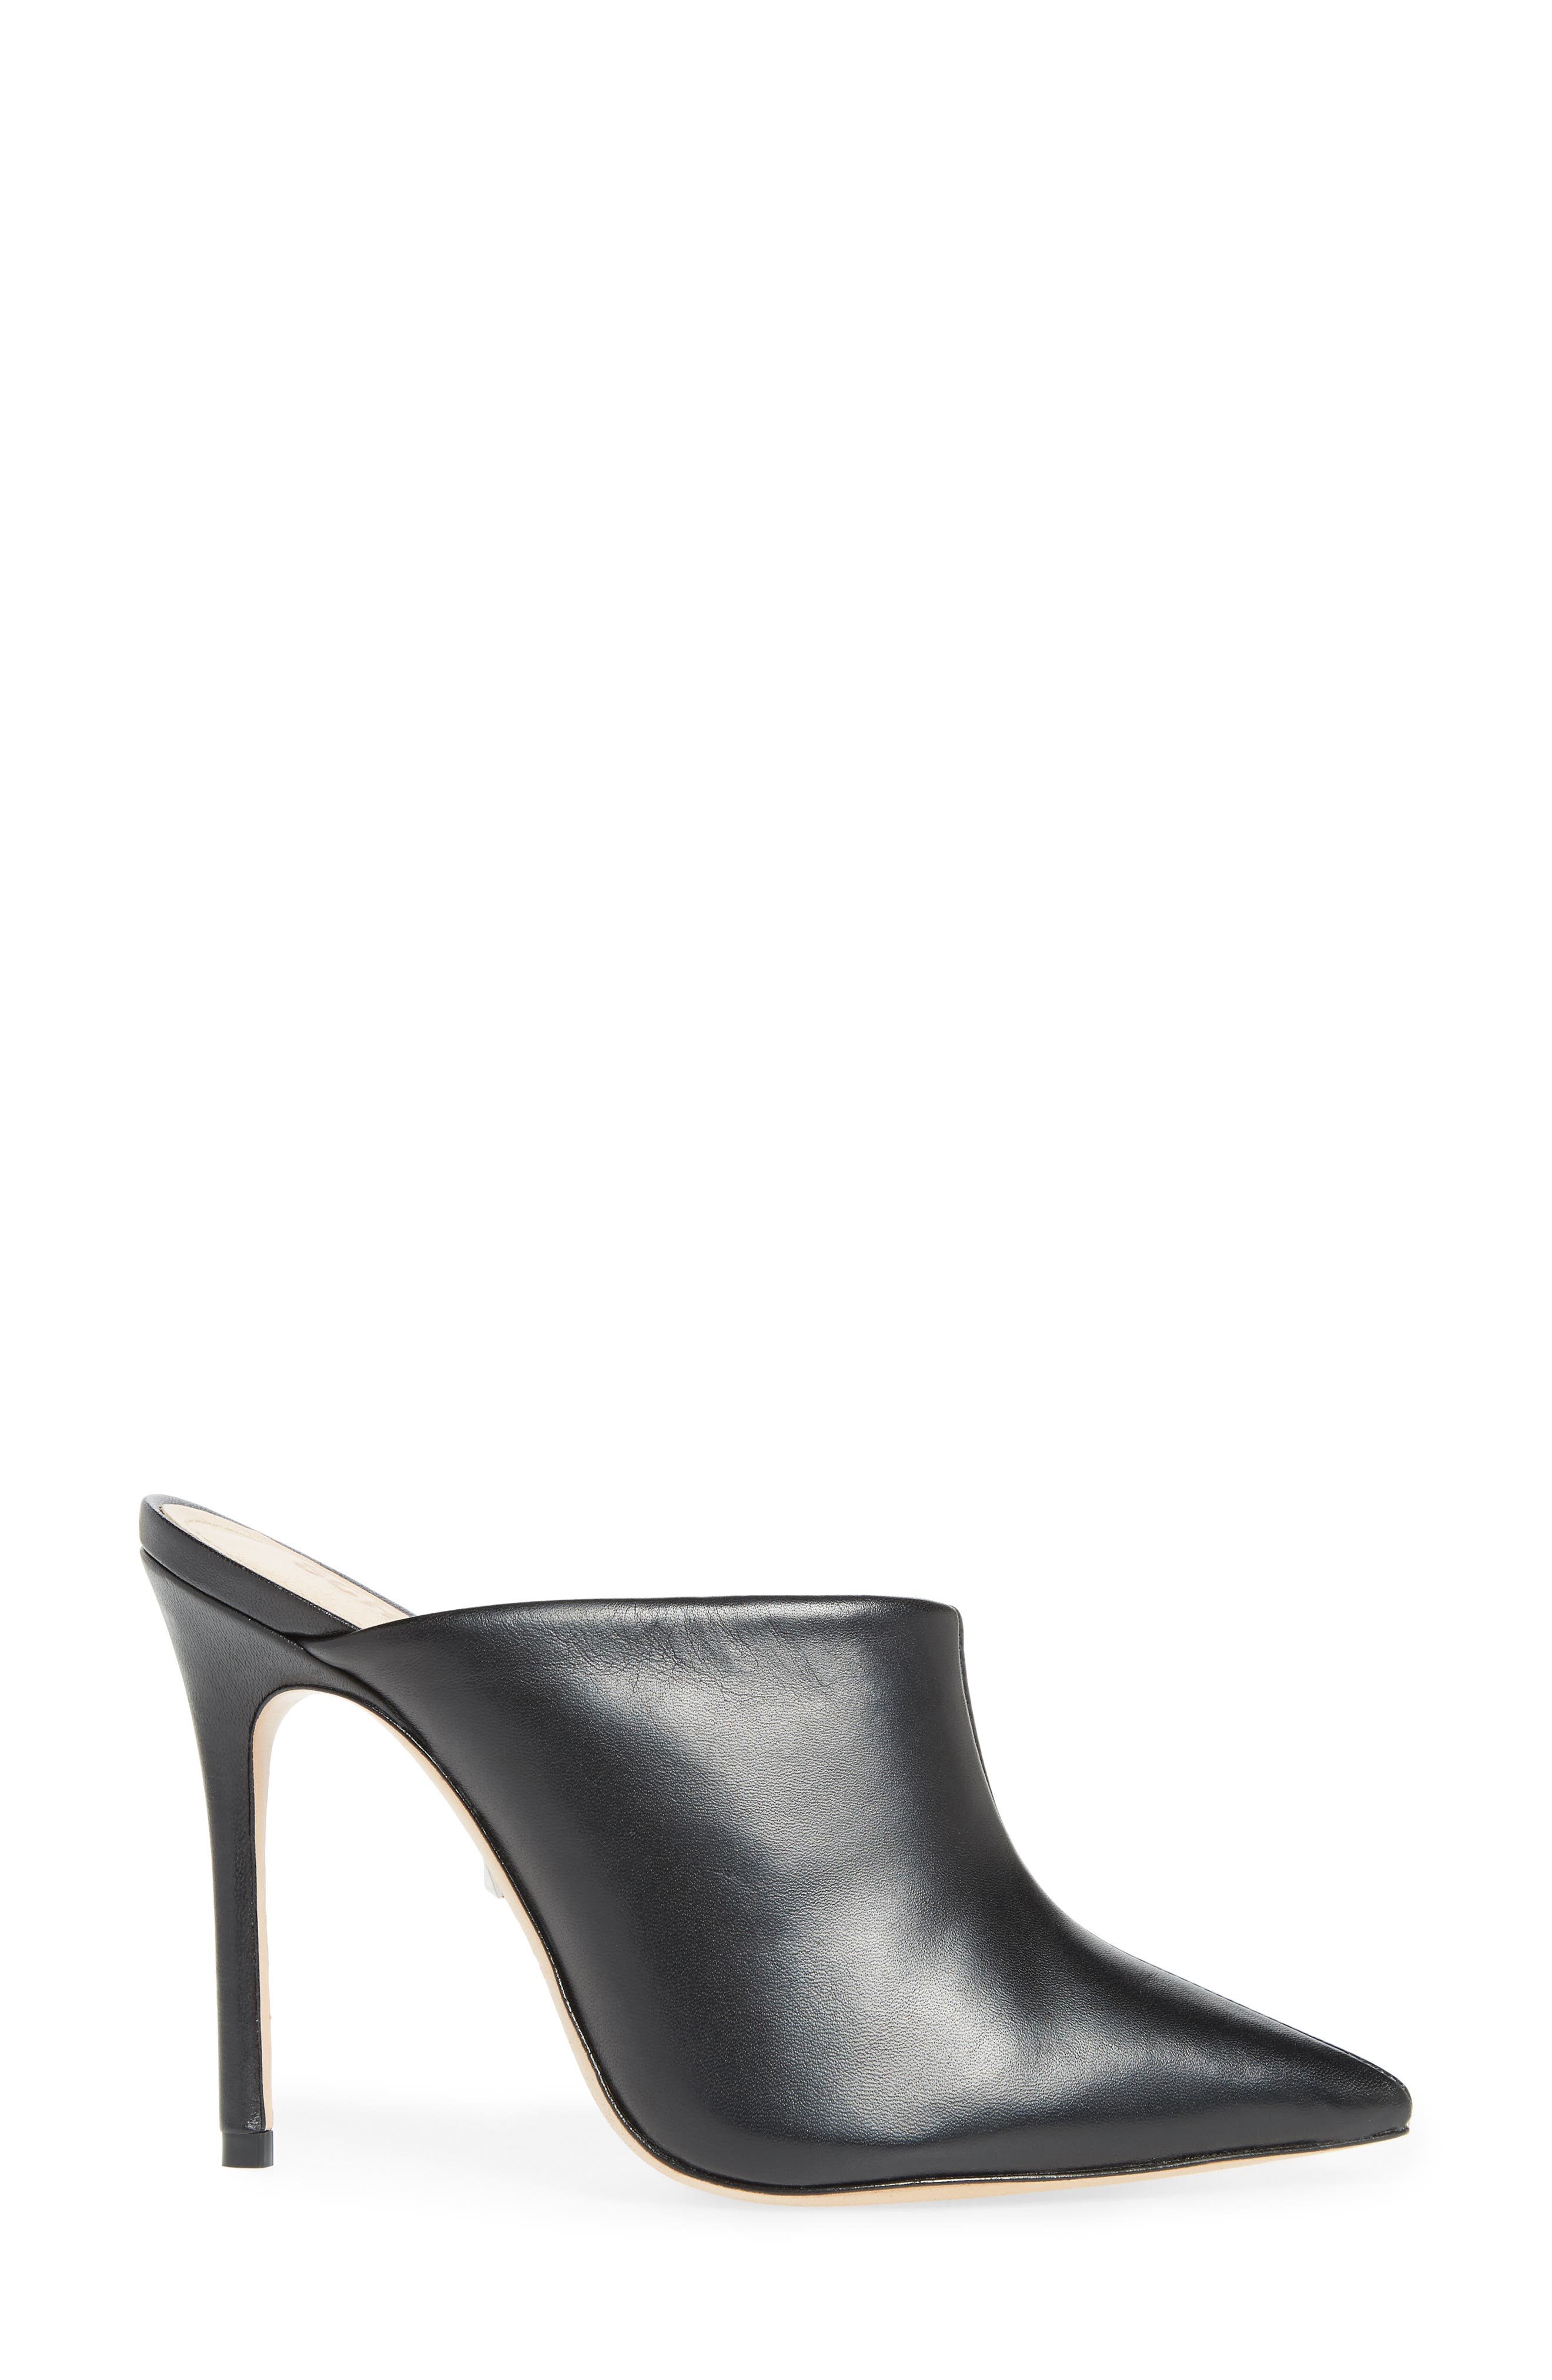 Quincy Stiletto Mule,                             Alternate thumbnail 3, color,                             BLACK